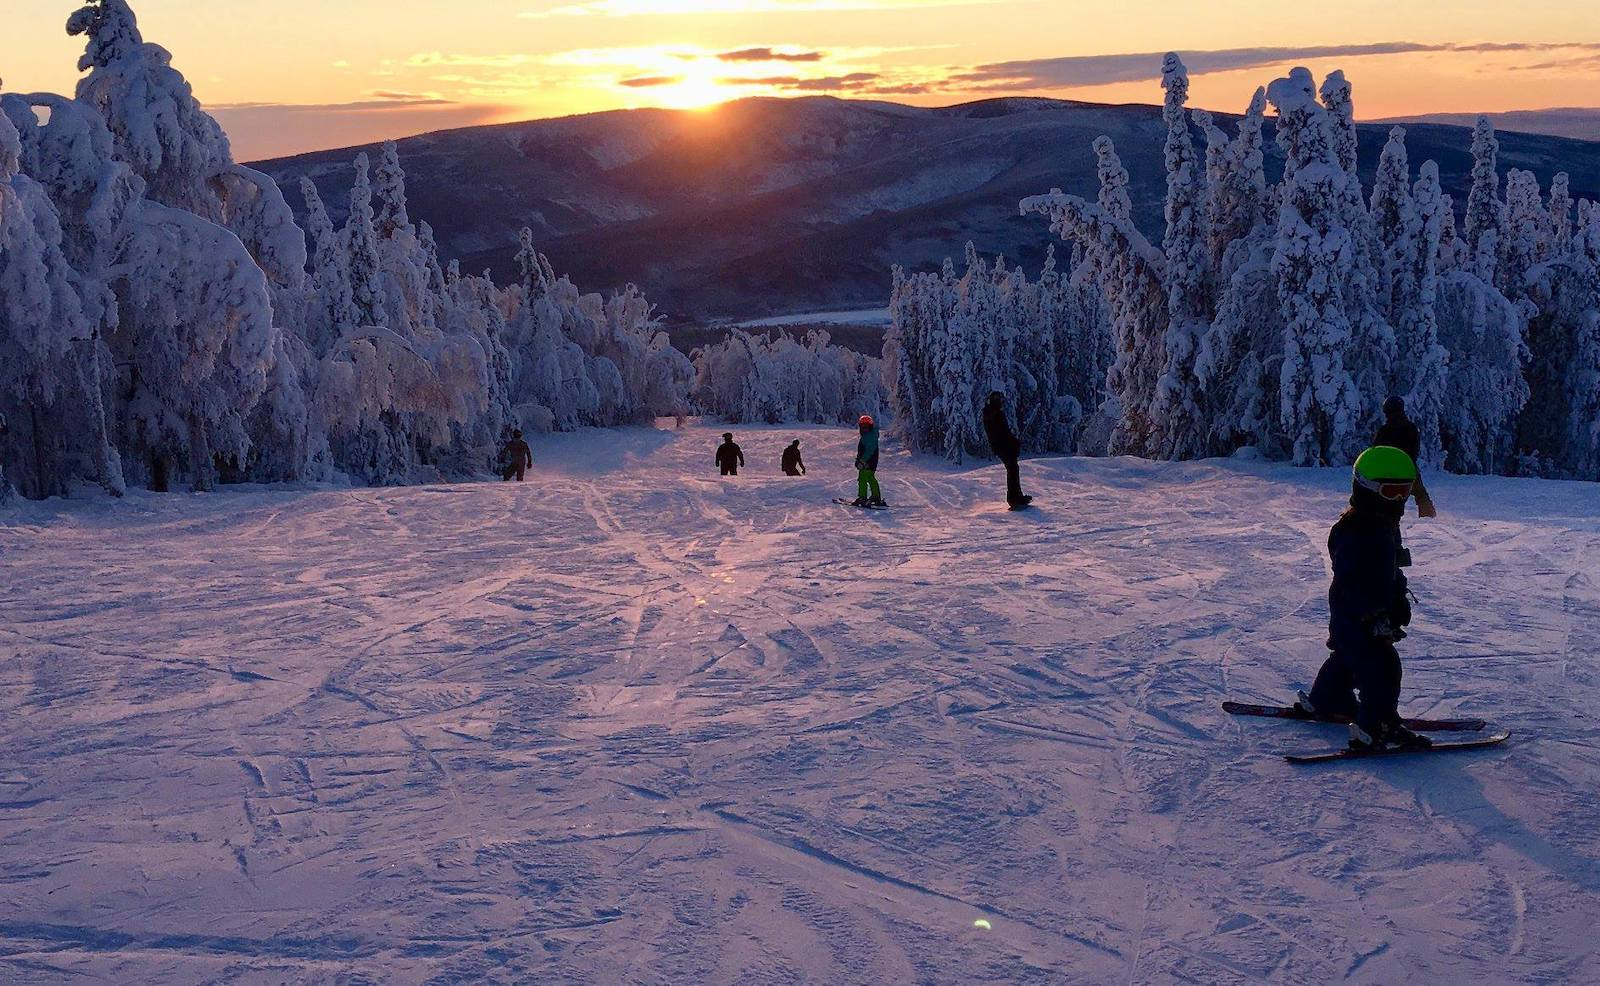 Image of skiers at sunset at Moose Mountain Ski Resort in Alaska